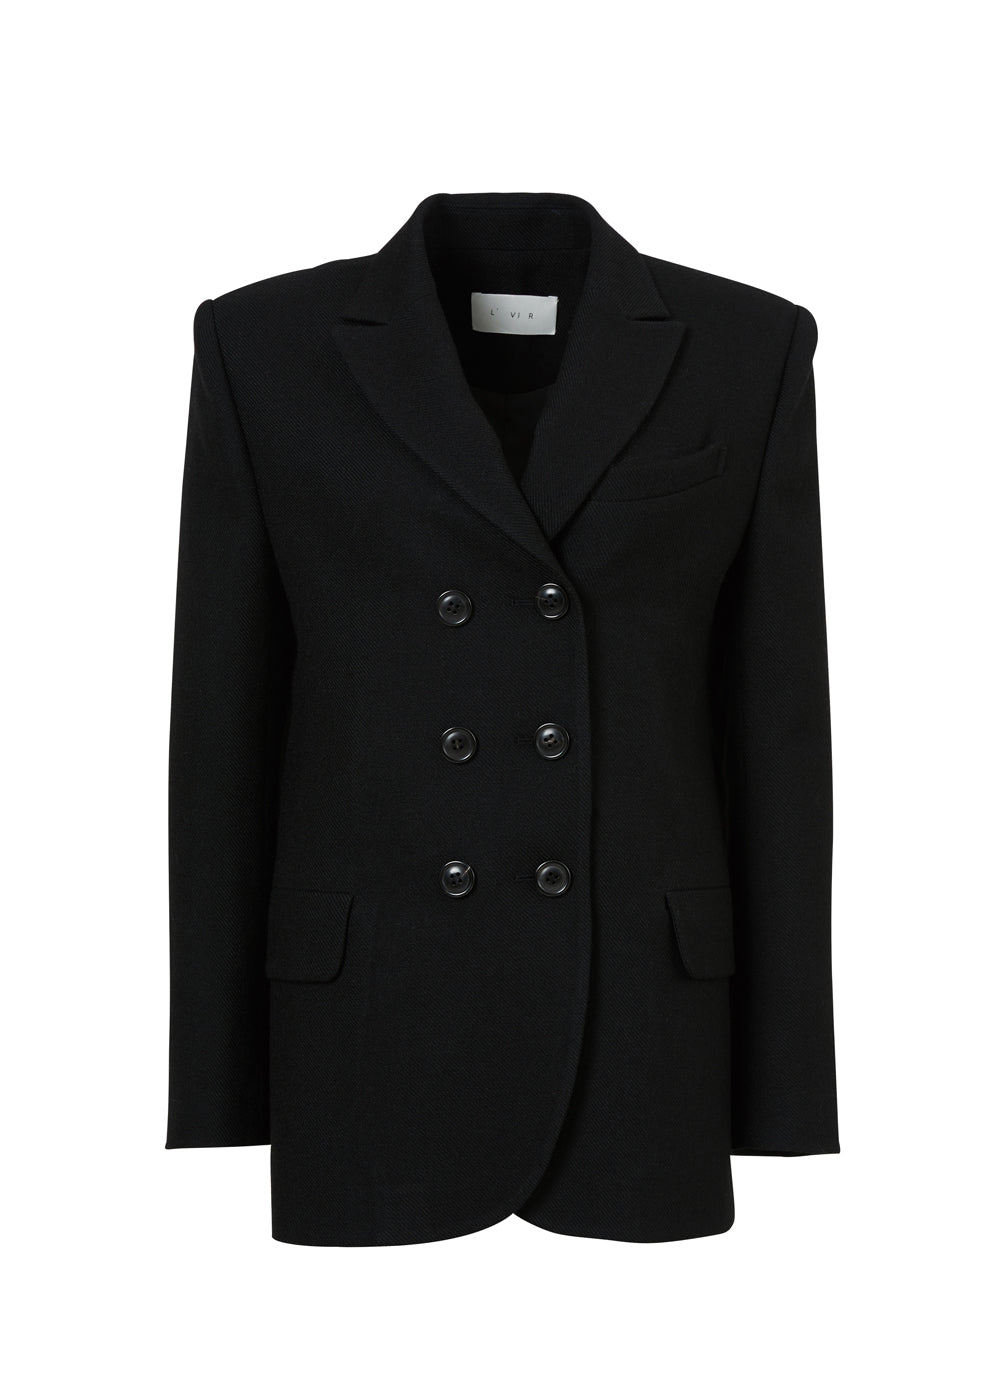 DOUBLE BUTTON JACKET BLACK